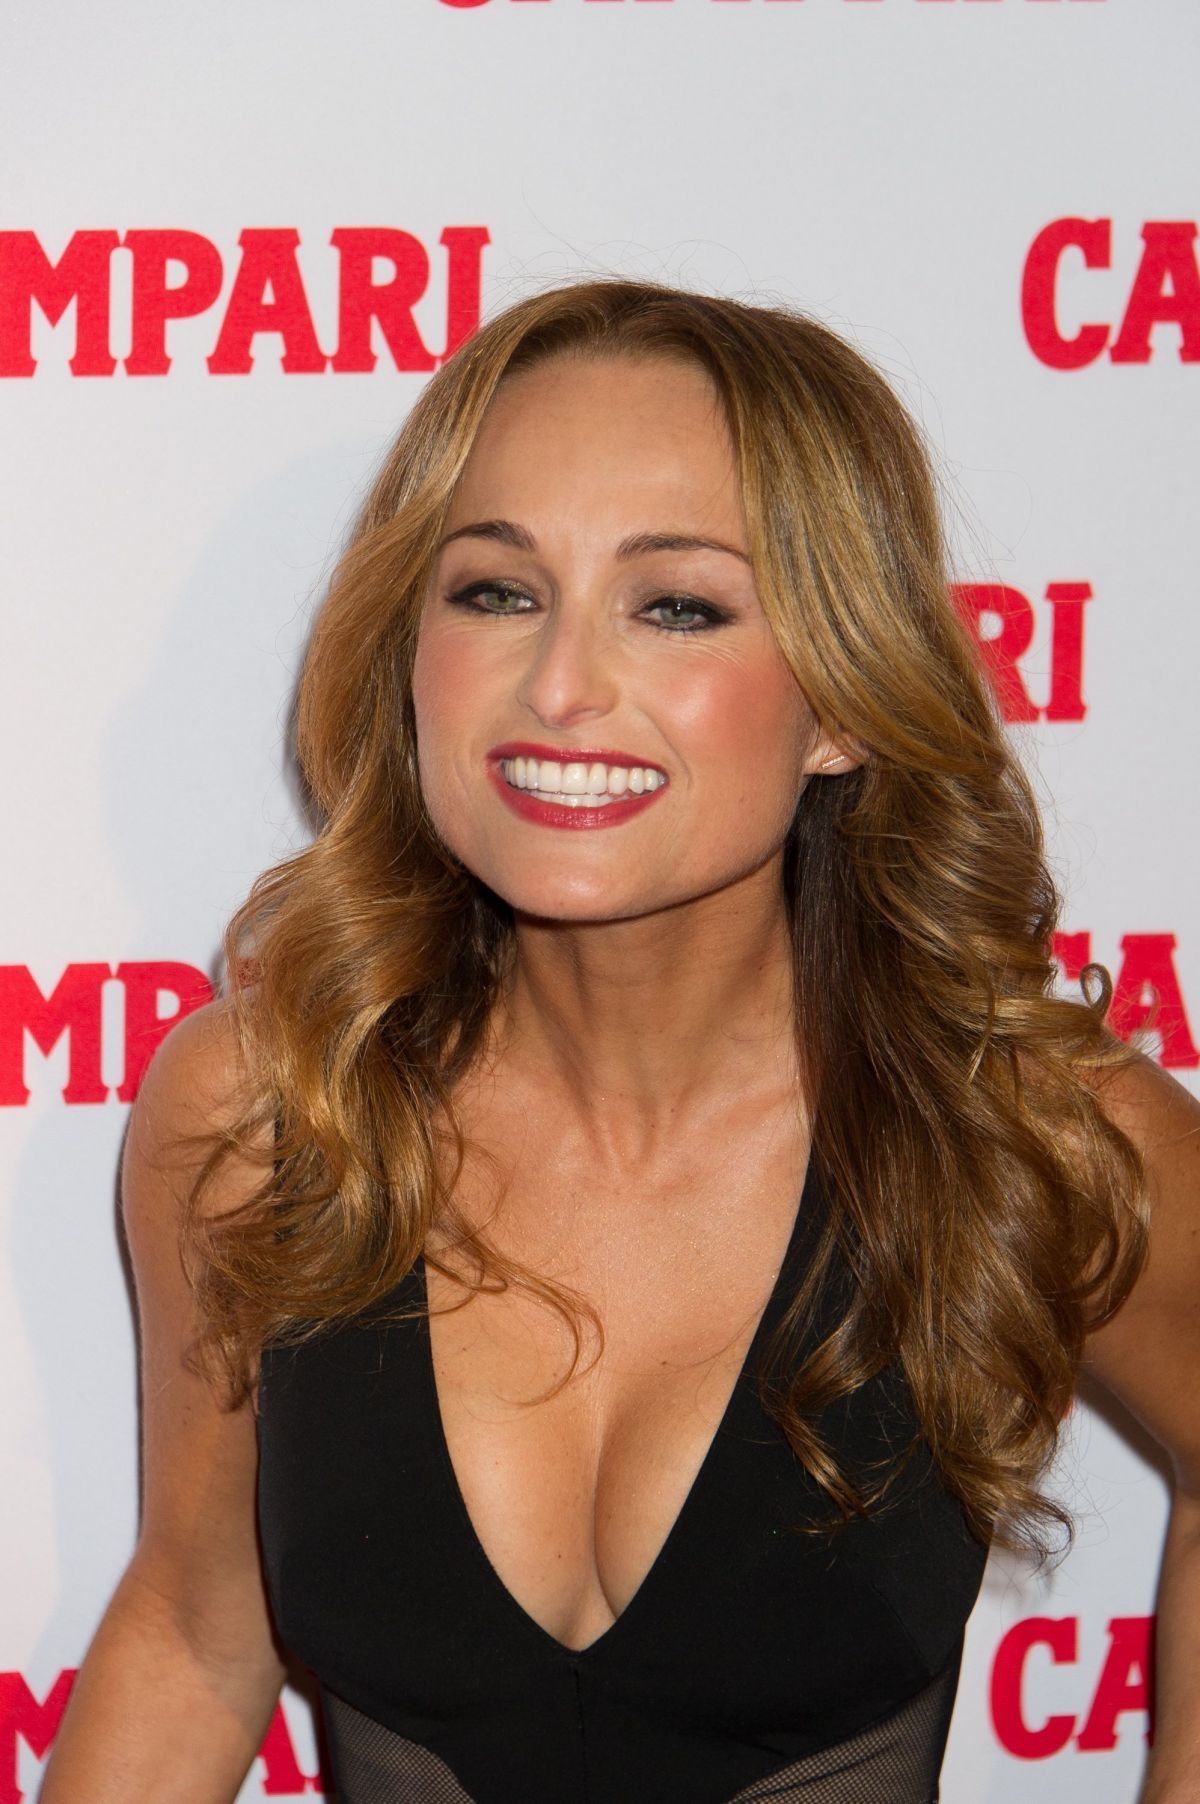 Photos Giada de Laurentiis nudes (21 photos), Sexy, Bikini, Feet, braless 2006